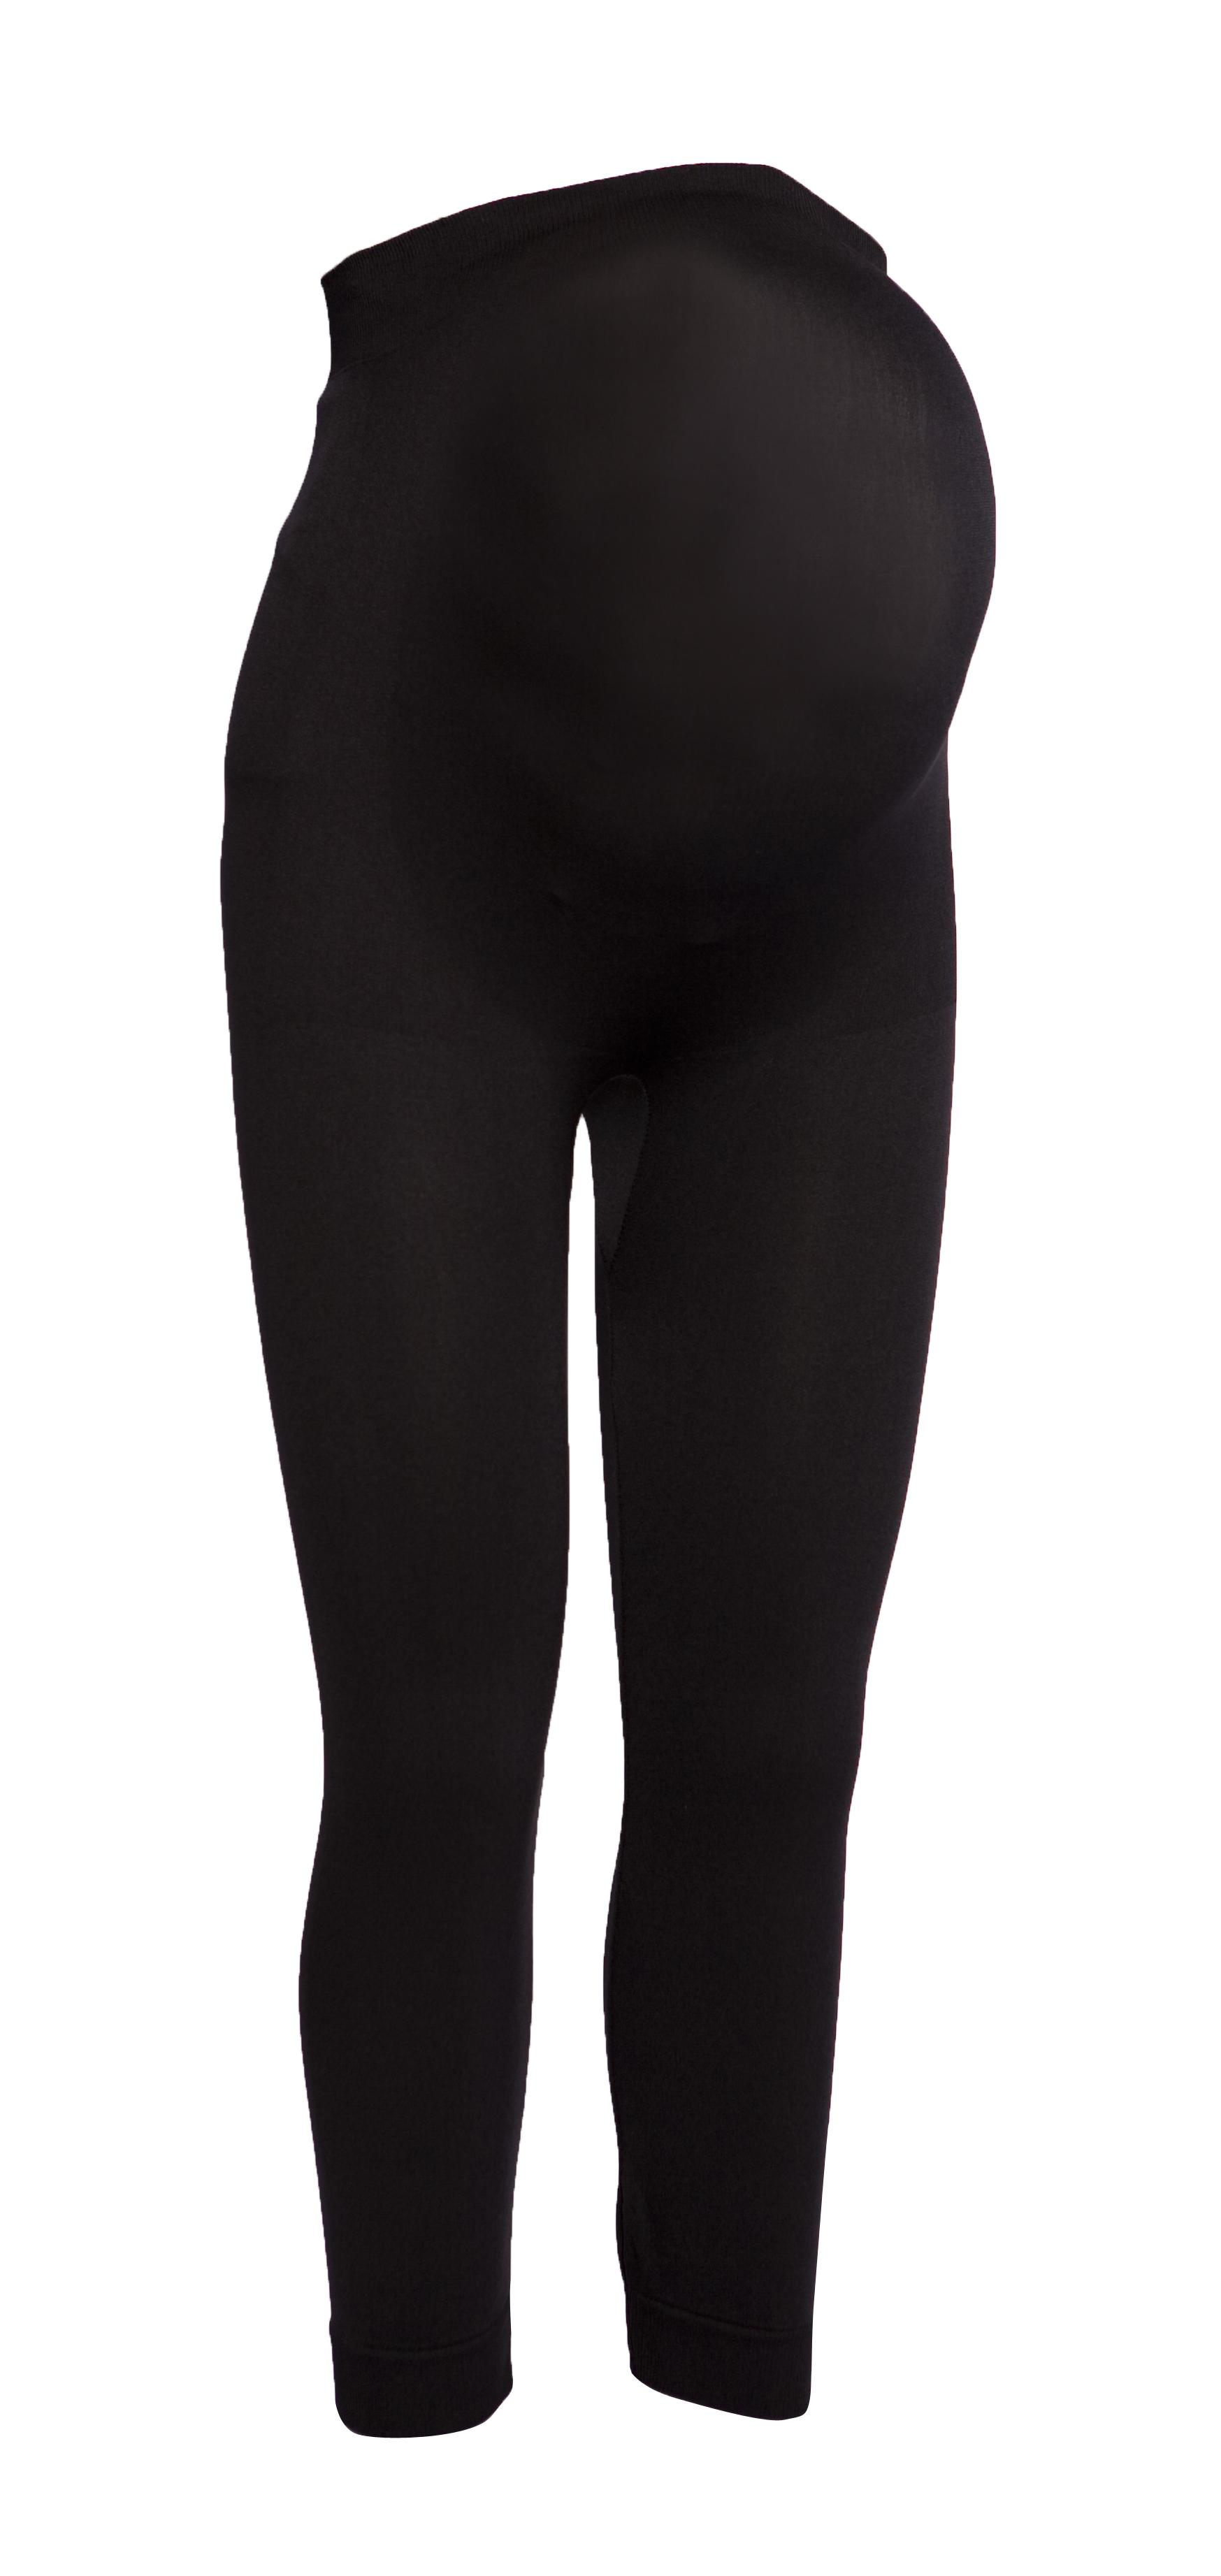 Egg maternity leggings